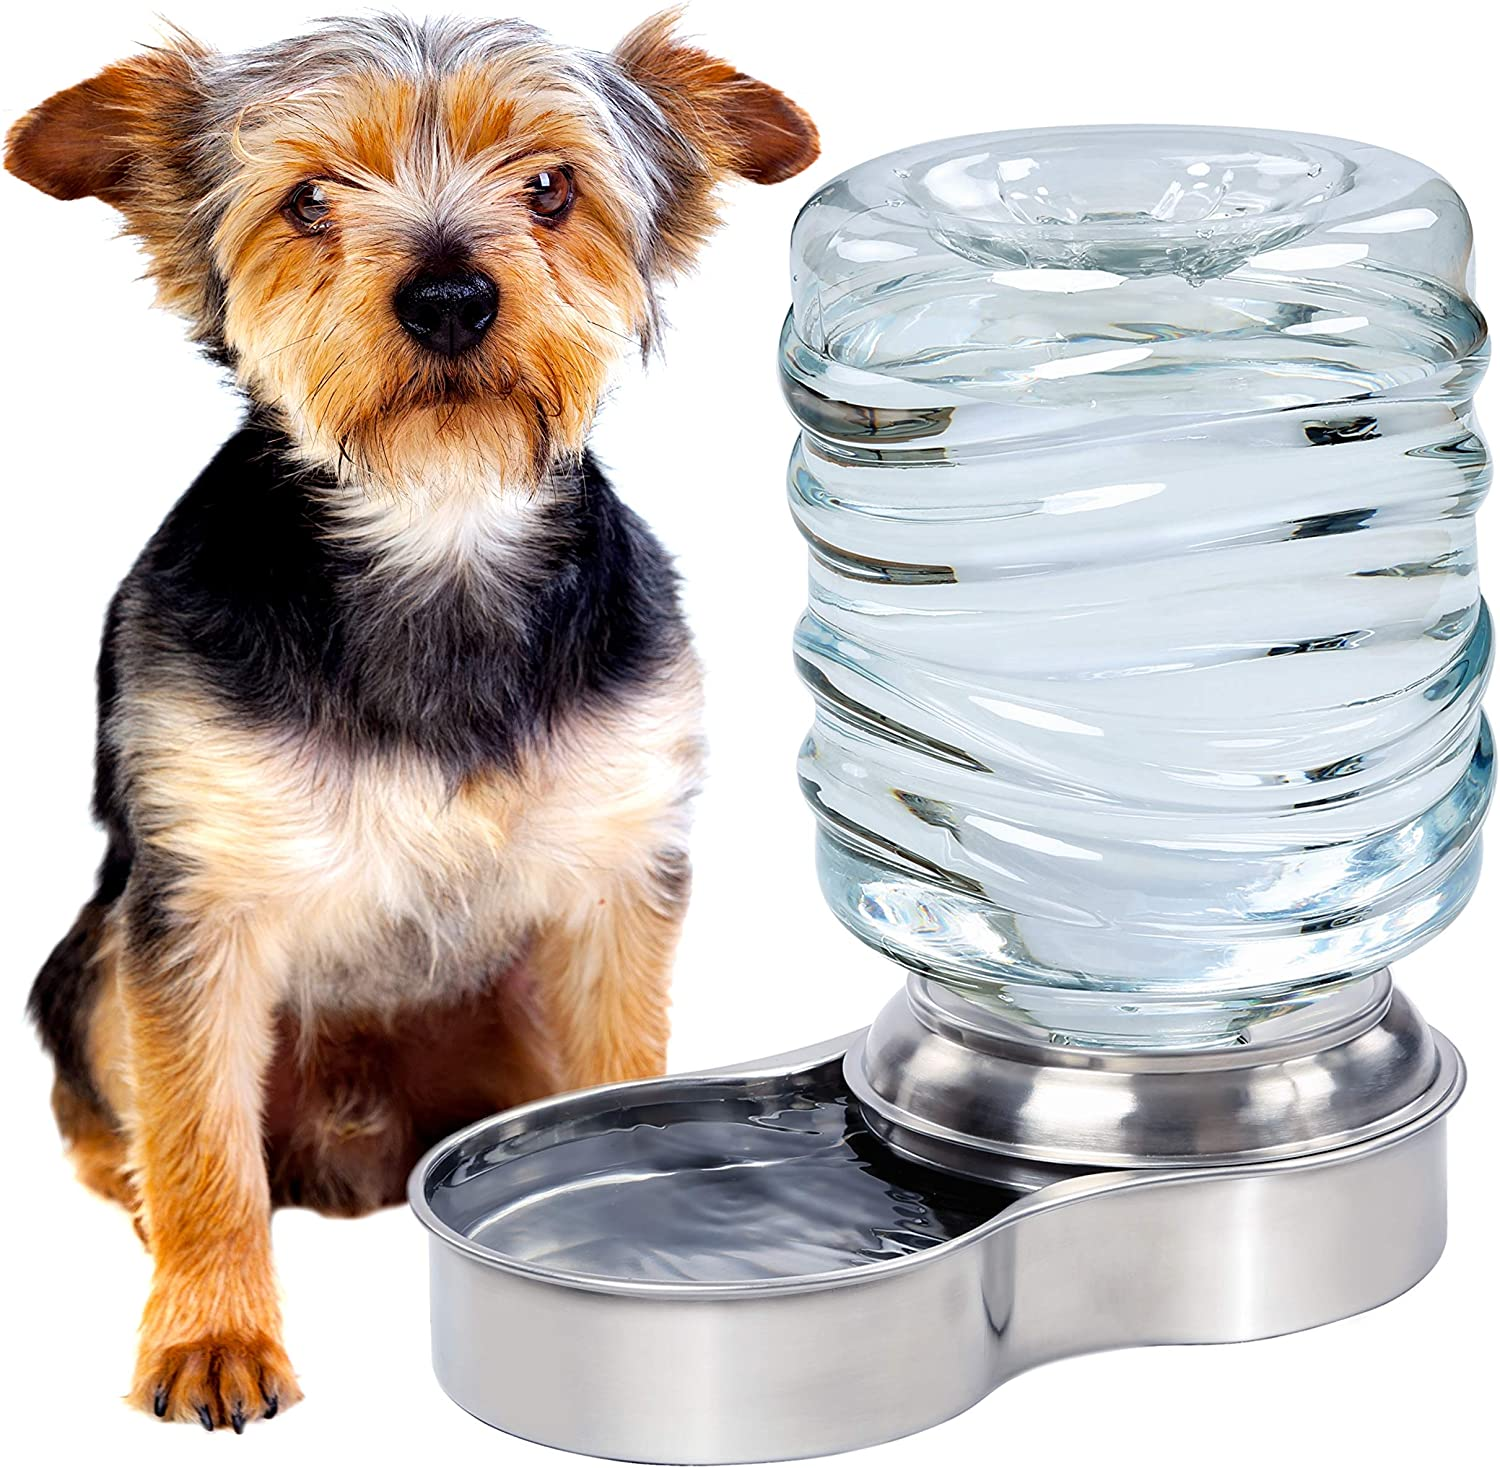 Bundaloo Dog Water Bowl Dispenser - Automatic Slow Refilling System Keeps Stainless Steel Drinking Dish Filled - Refillable 3 Liter Bottle, Non-Skid Feet - Clean, Safe, & Fresh Drink for Pet Dogs